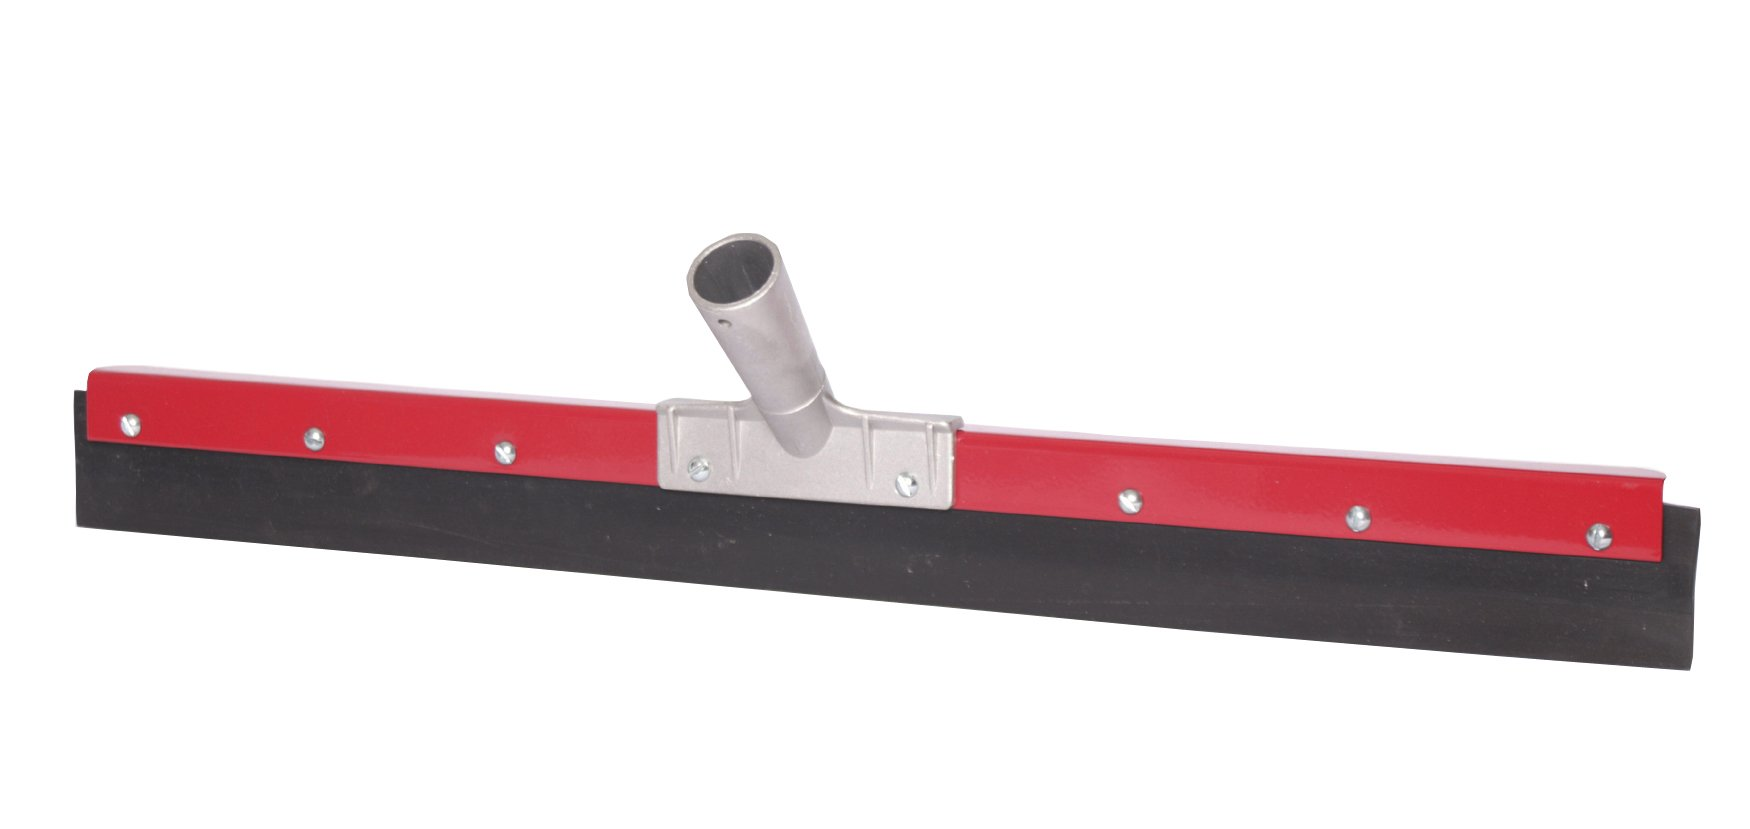 Haviland 324 Synthetic Rubber Buna Blend Heavy Duty Floor Squeegee, 24'' Length, Black